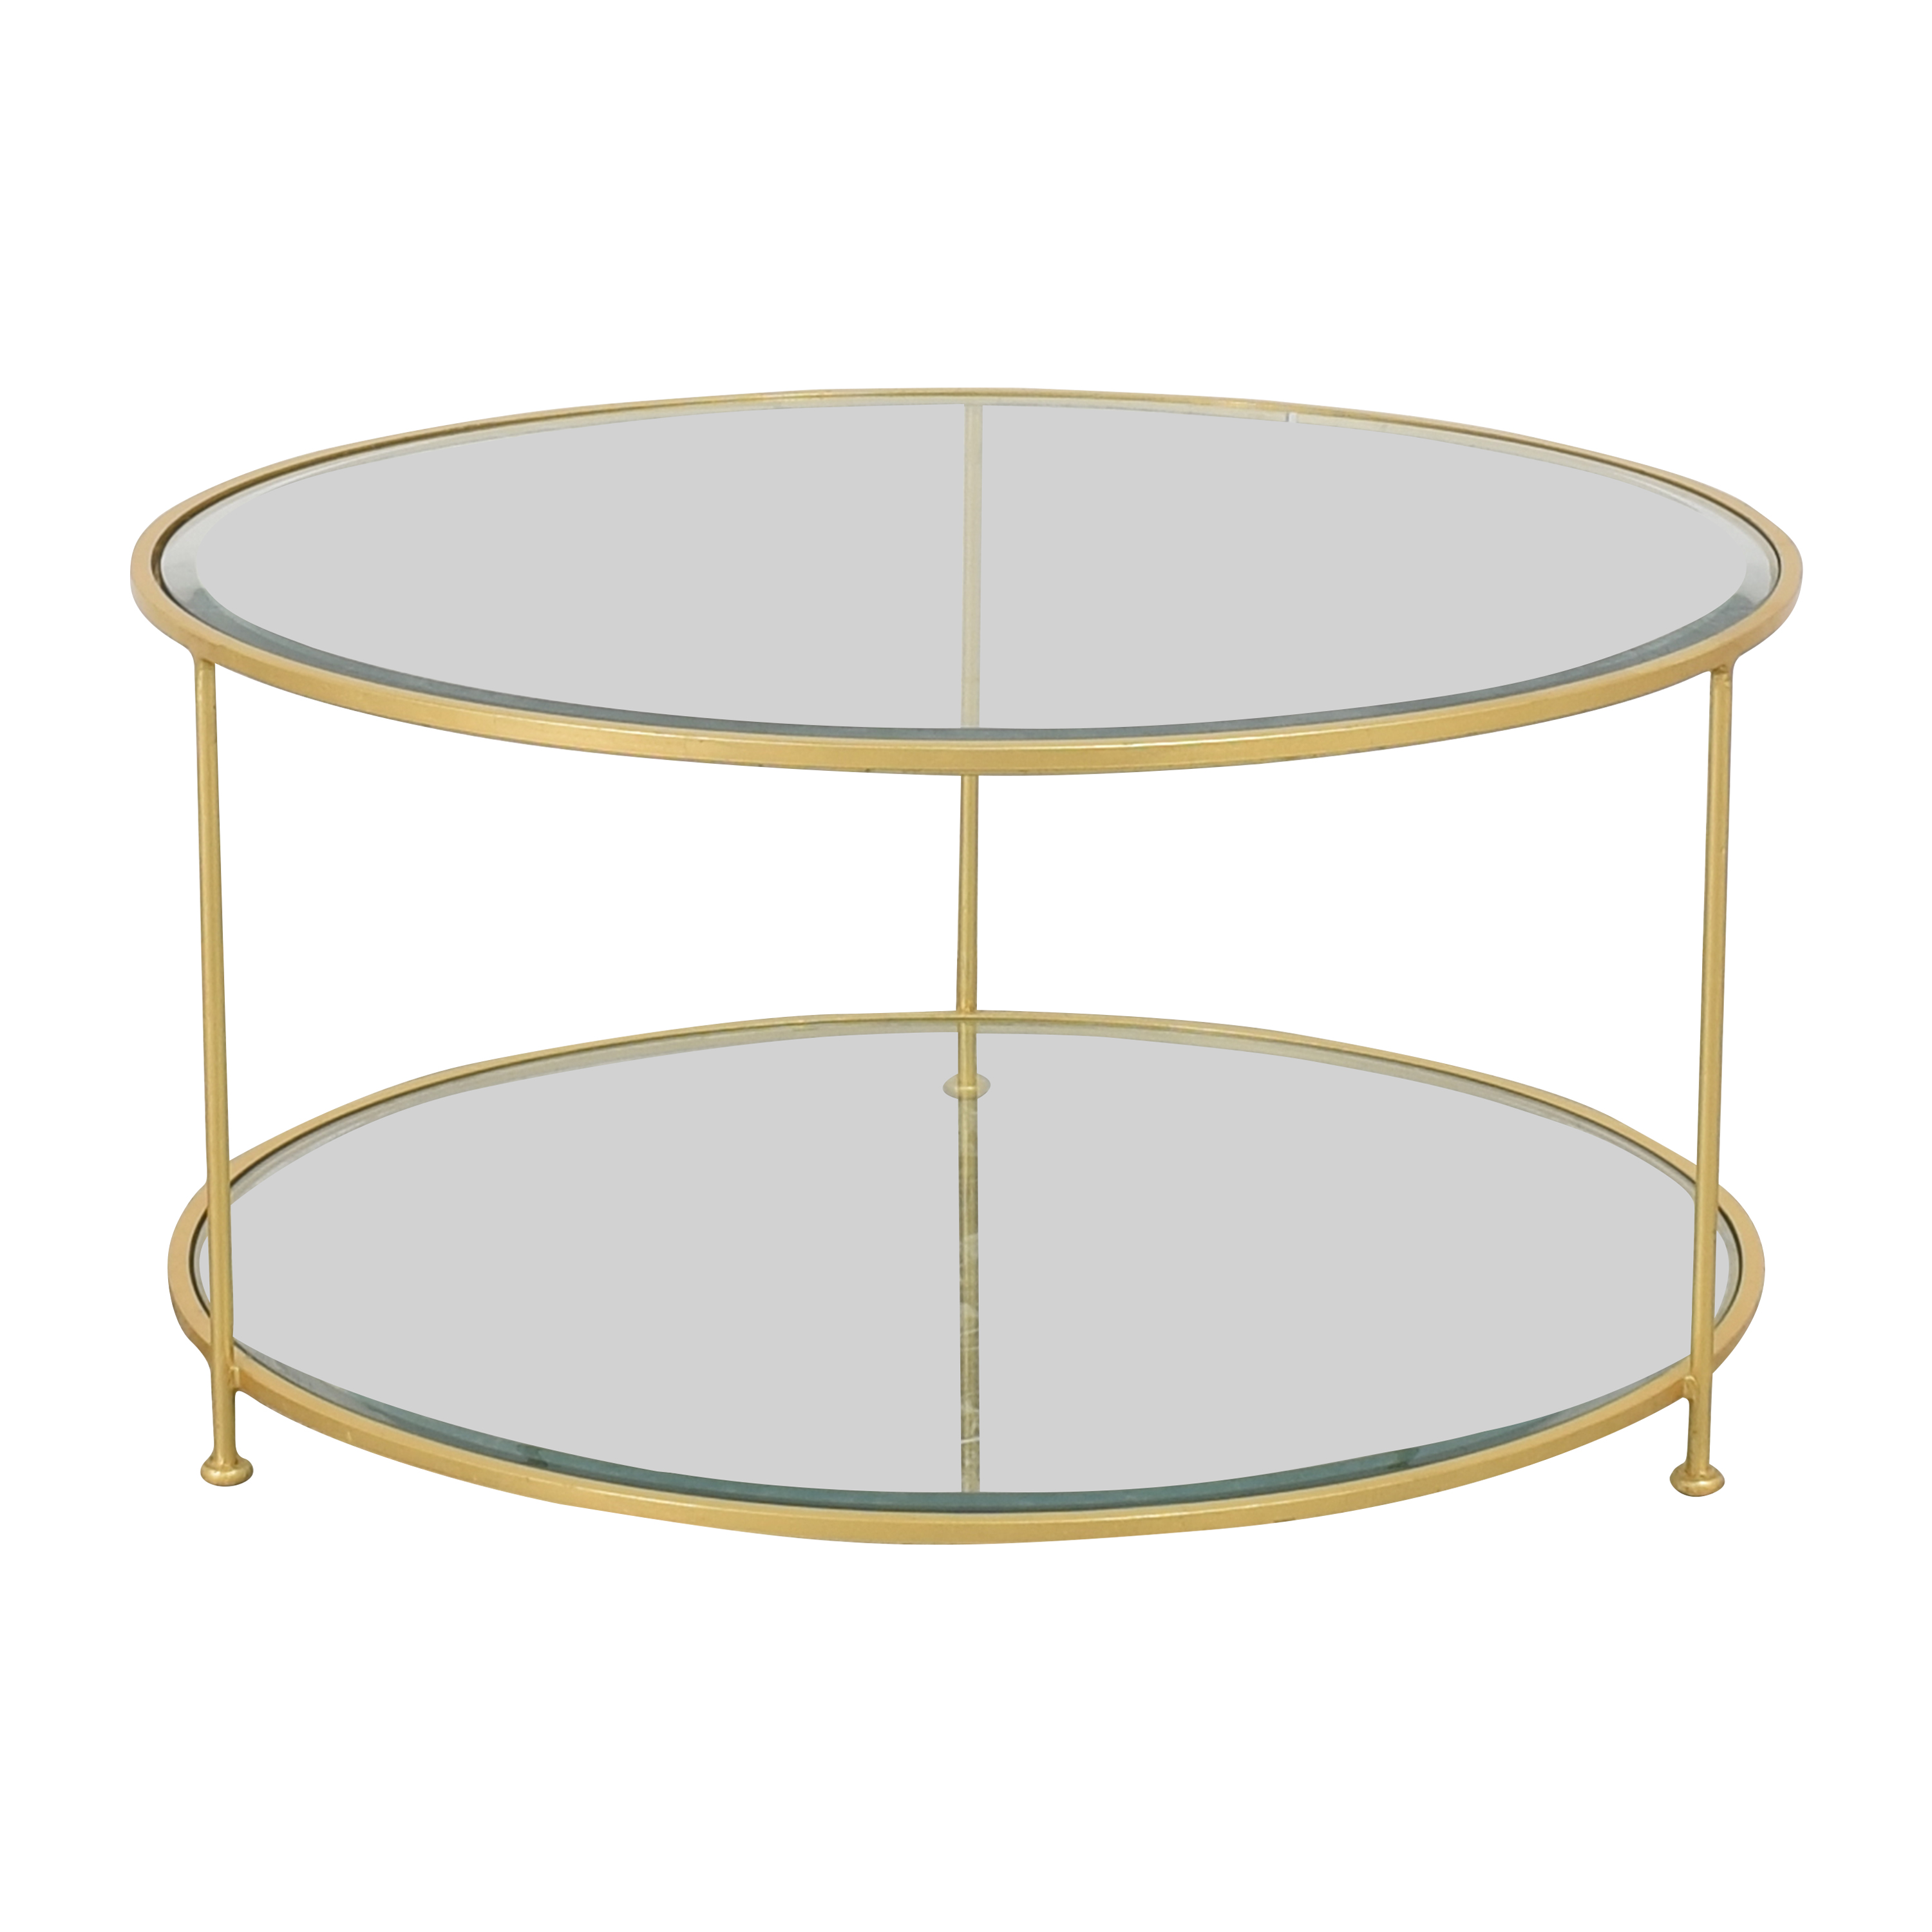 Worlds Away Worlds Away Rollo G Coffee Table used